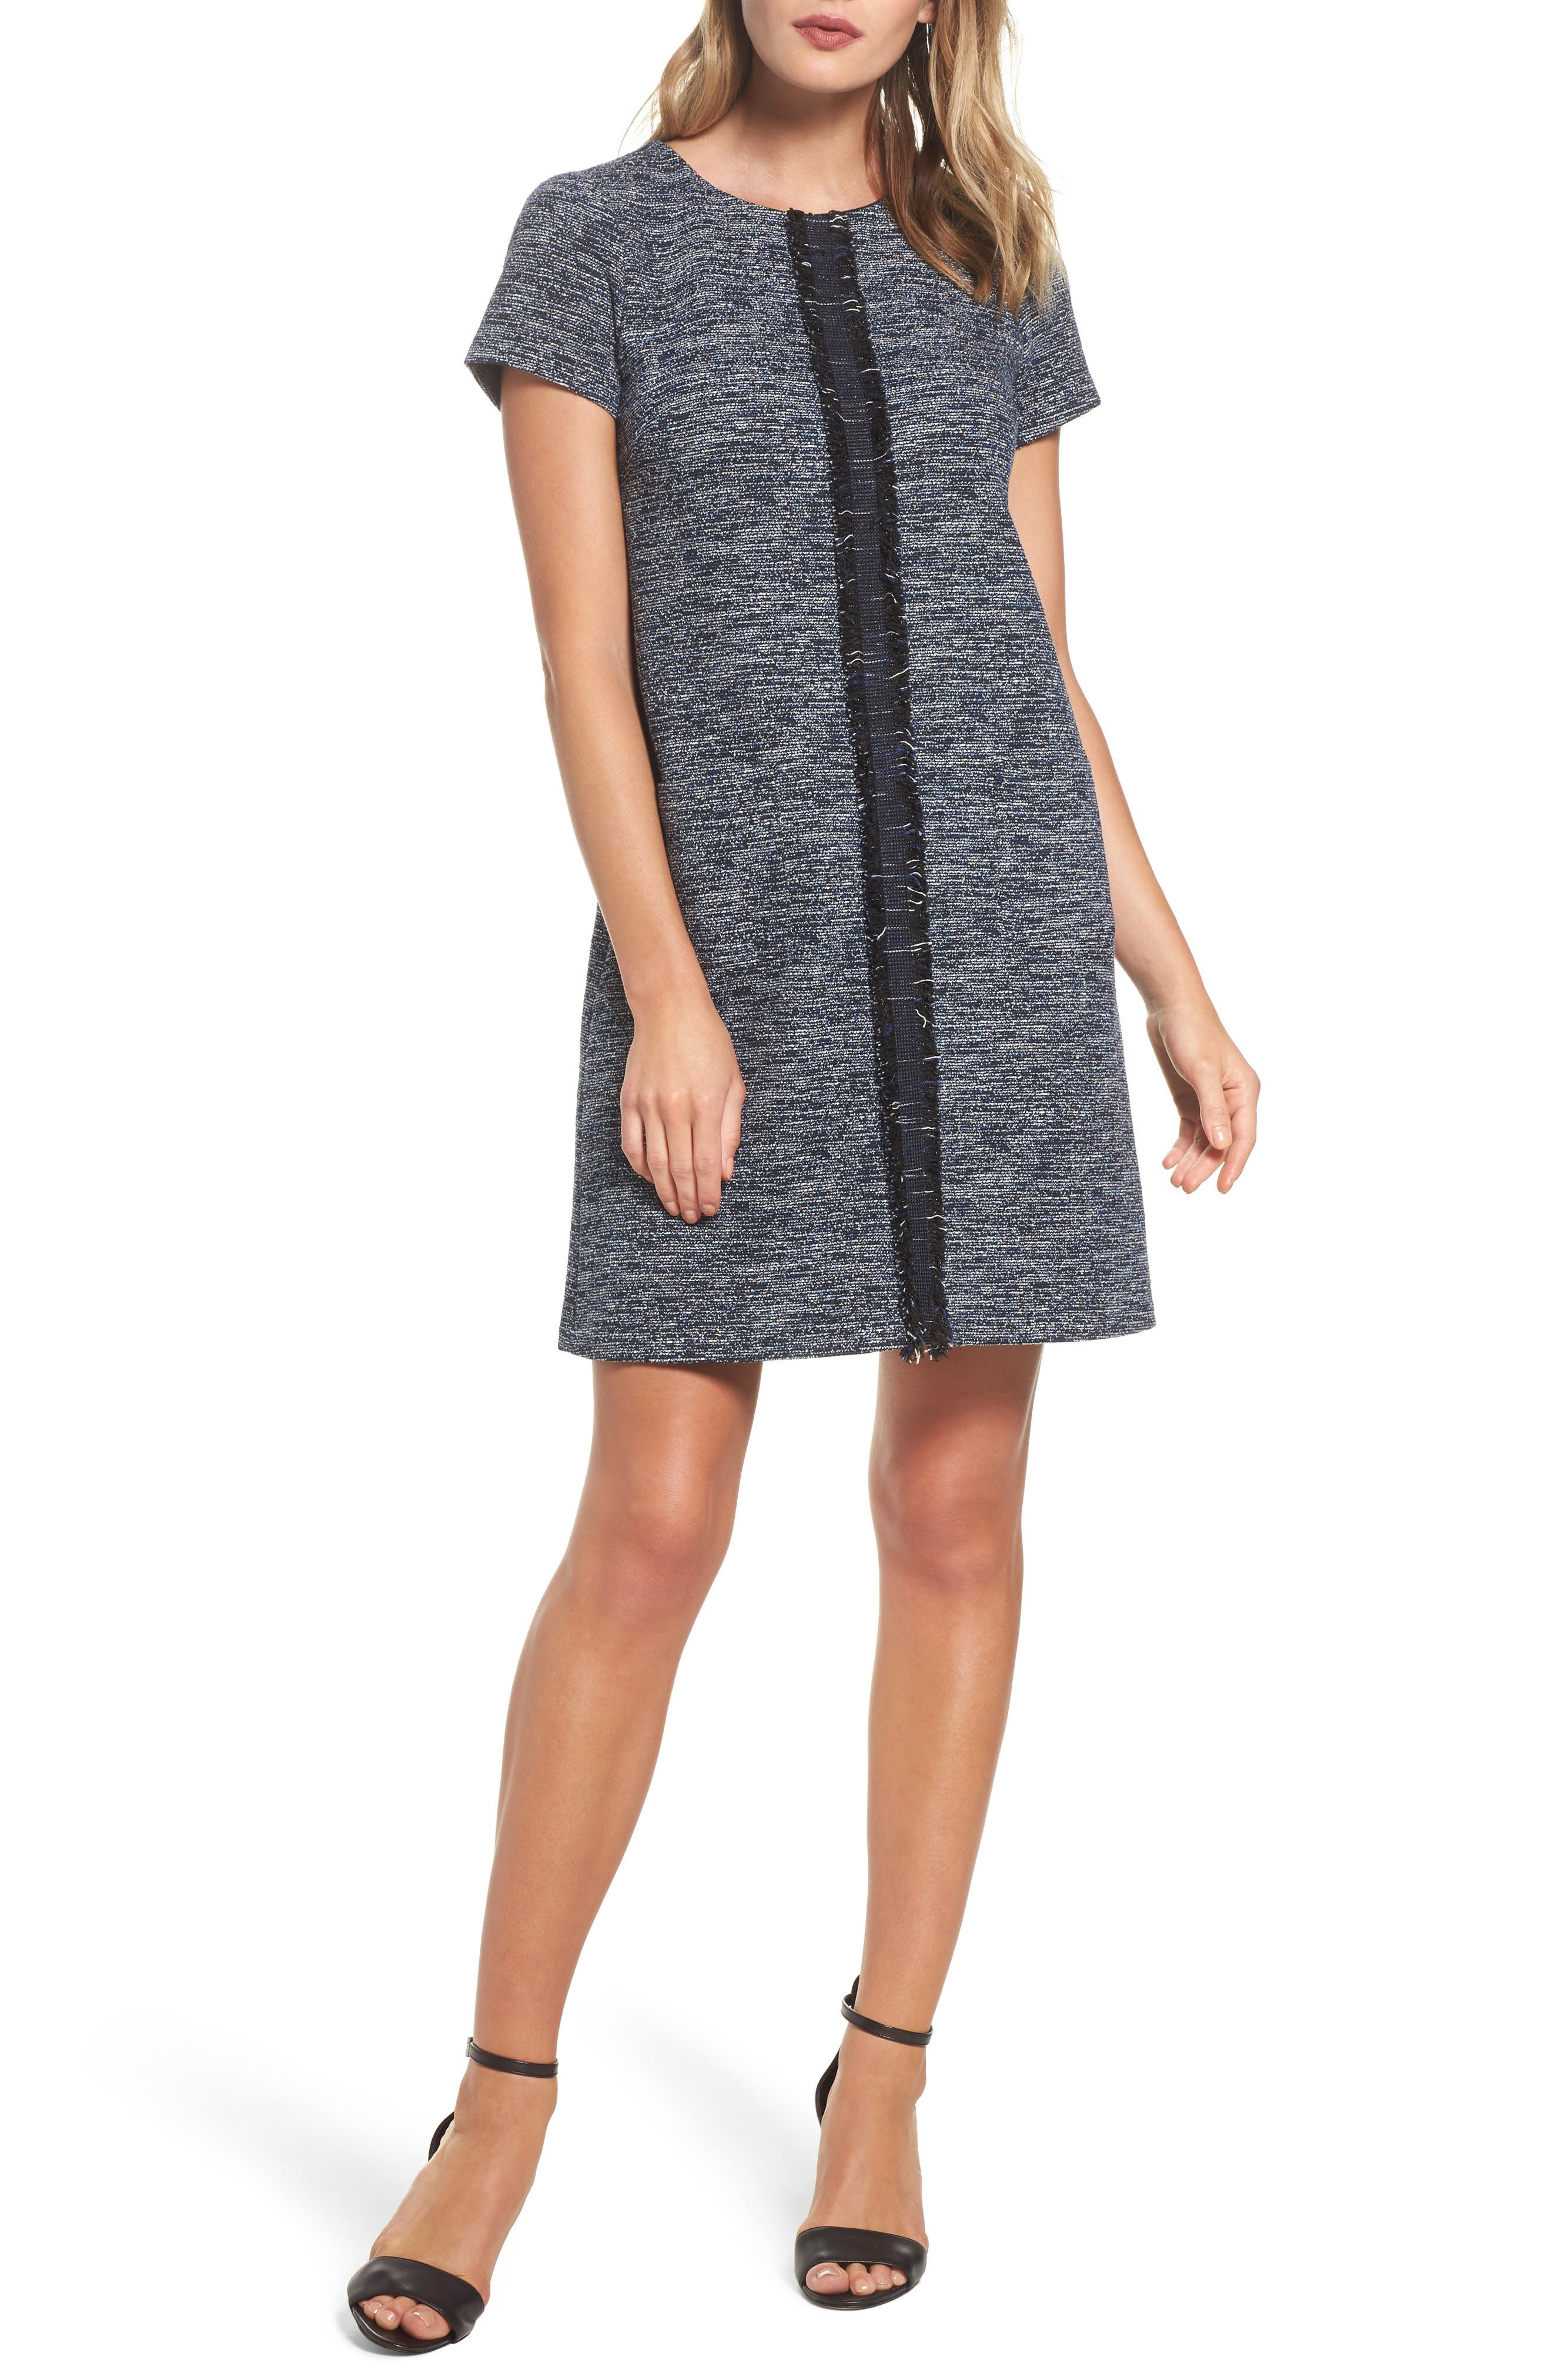 Main Image - Adrianna Papell Knit Tweed Shift Dress